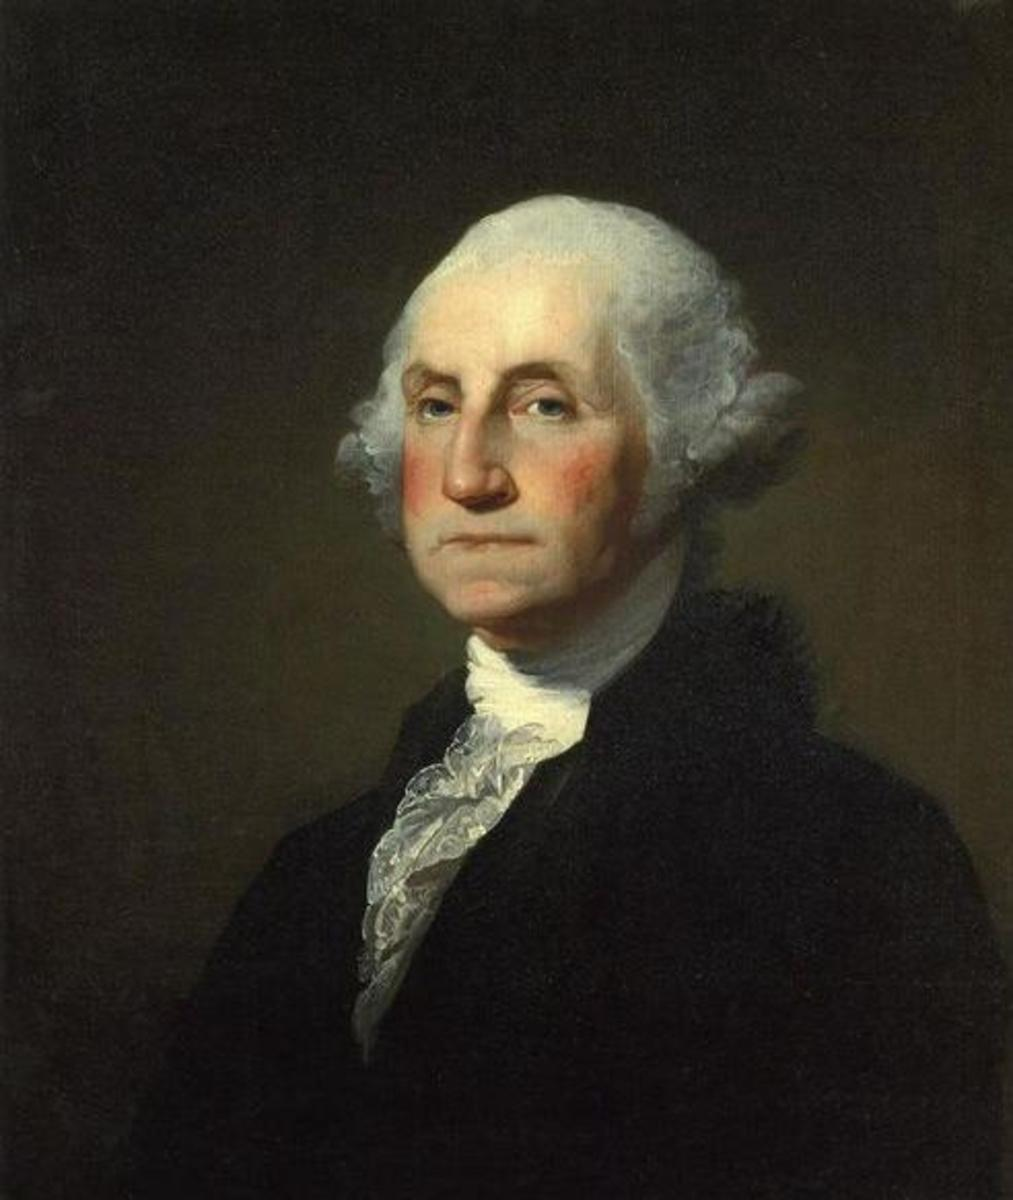 George Washington's Faith in God and the American People